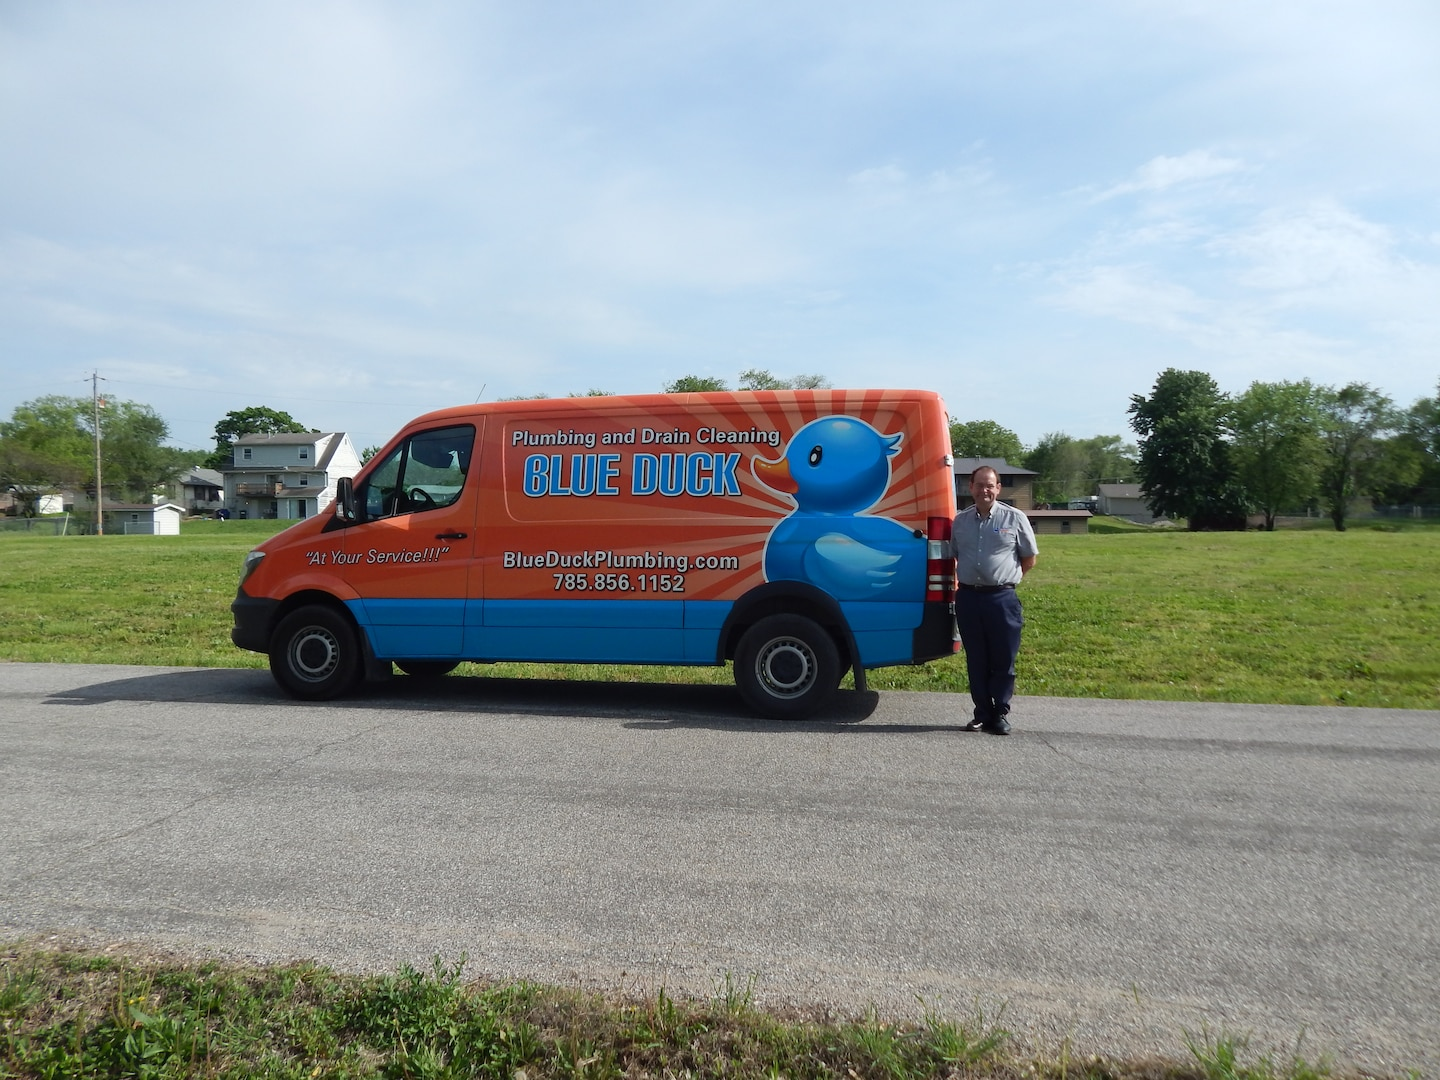 Blue Duck Plumbing and Drain Cleaning